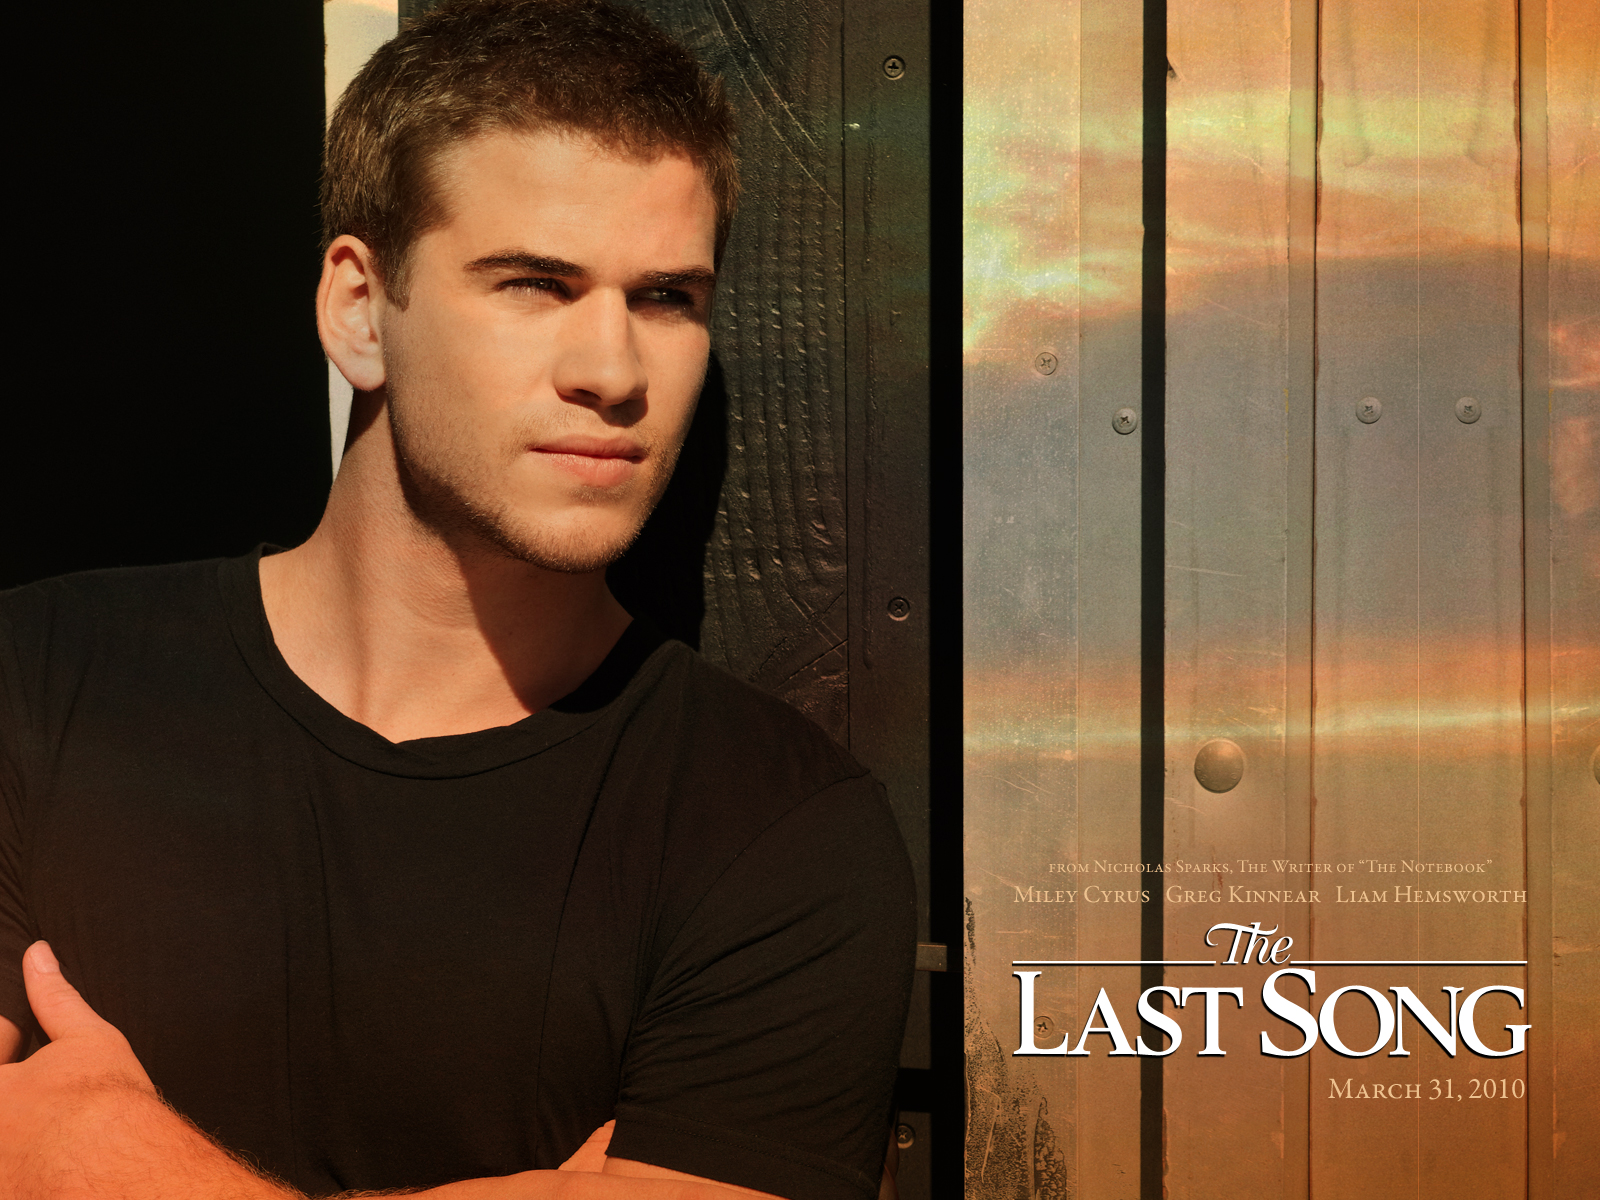 Liam Hemsworth and The Last Song